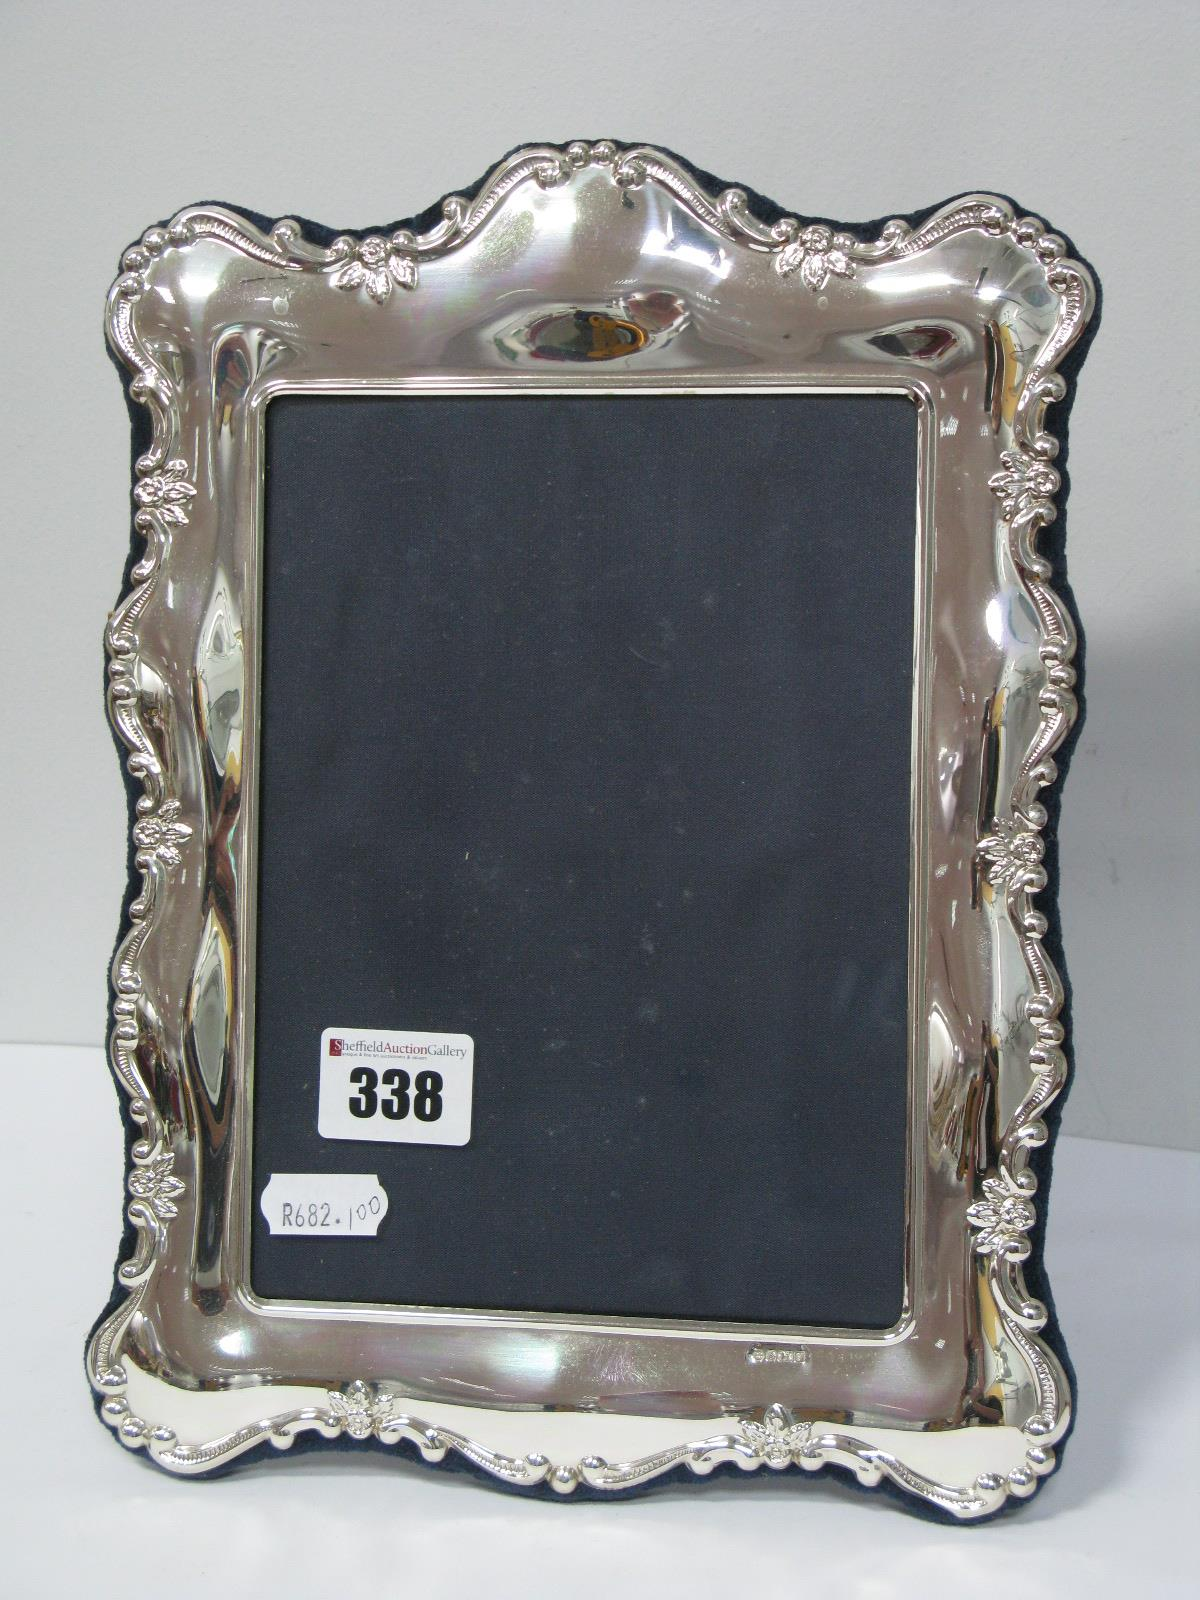 Lot 338 - A Modern Hallmarked Silver Mounted Rectangular Photograph Frame, of shaped design, on plush blue